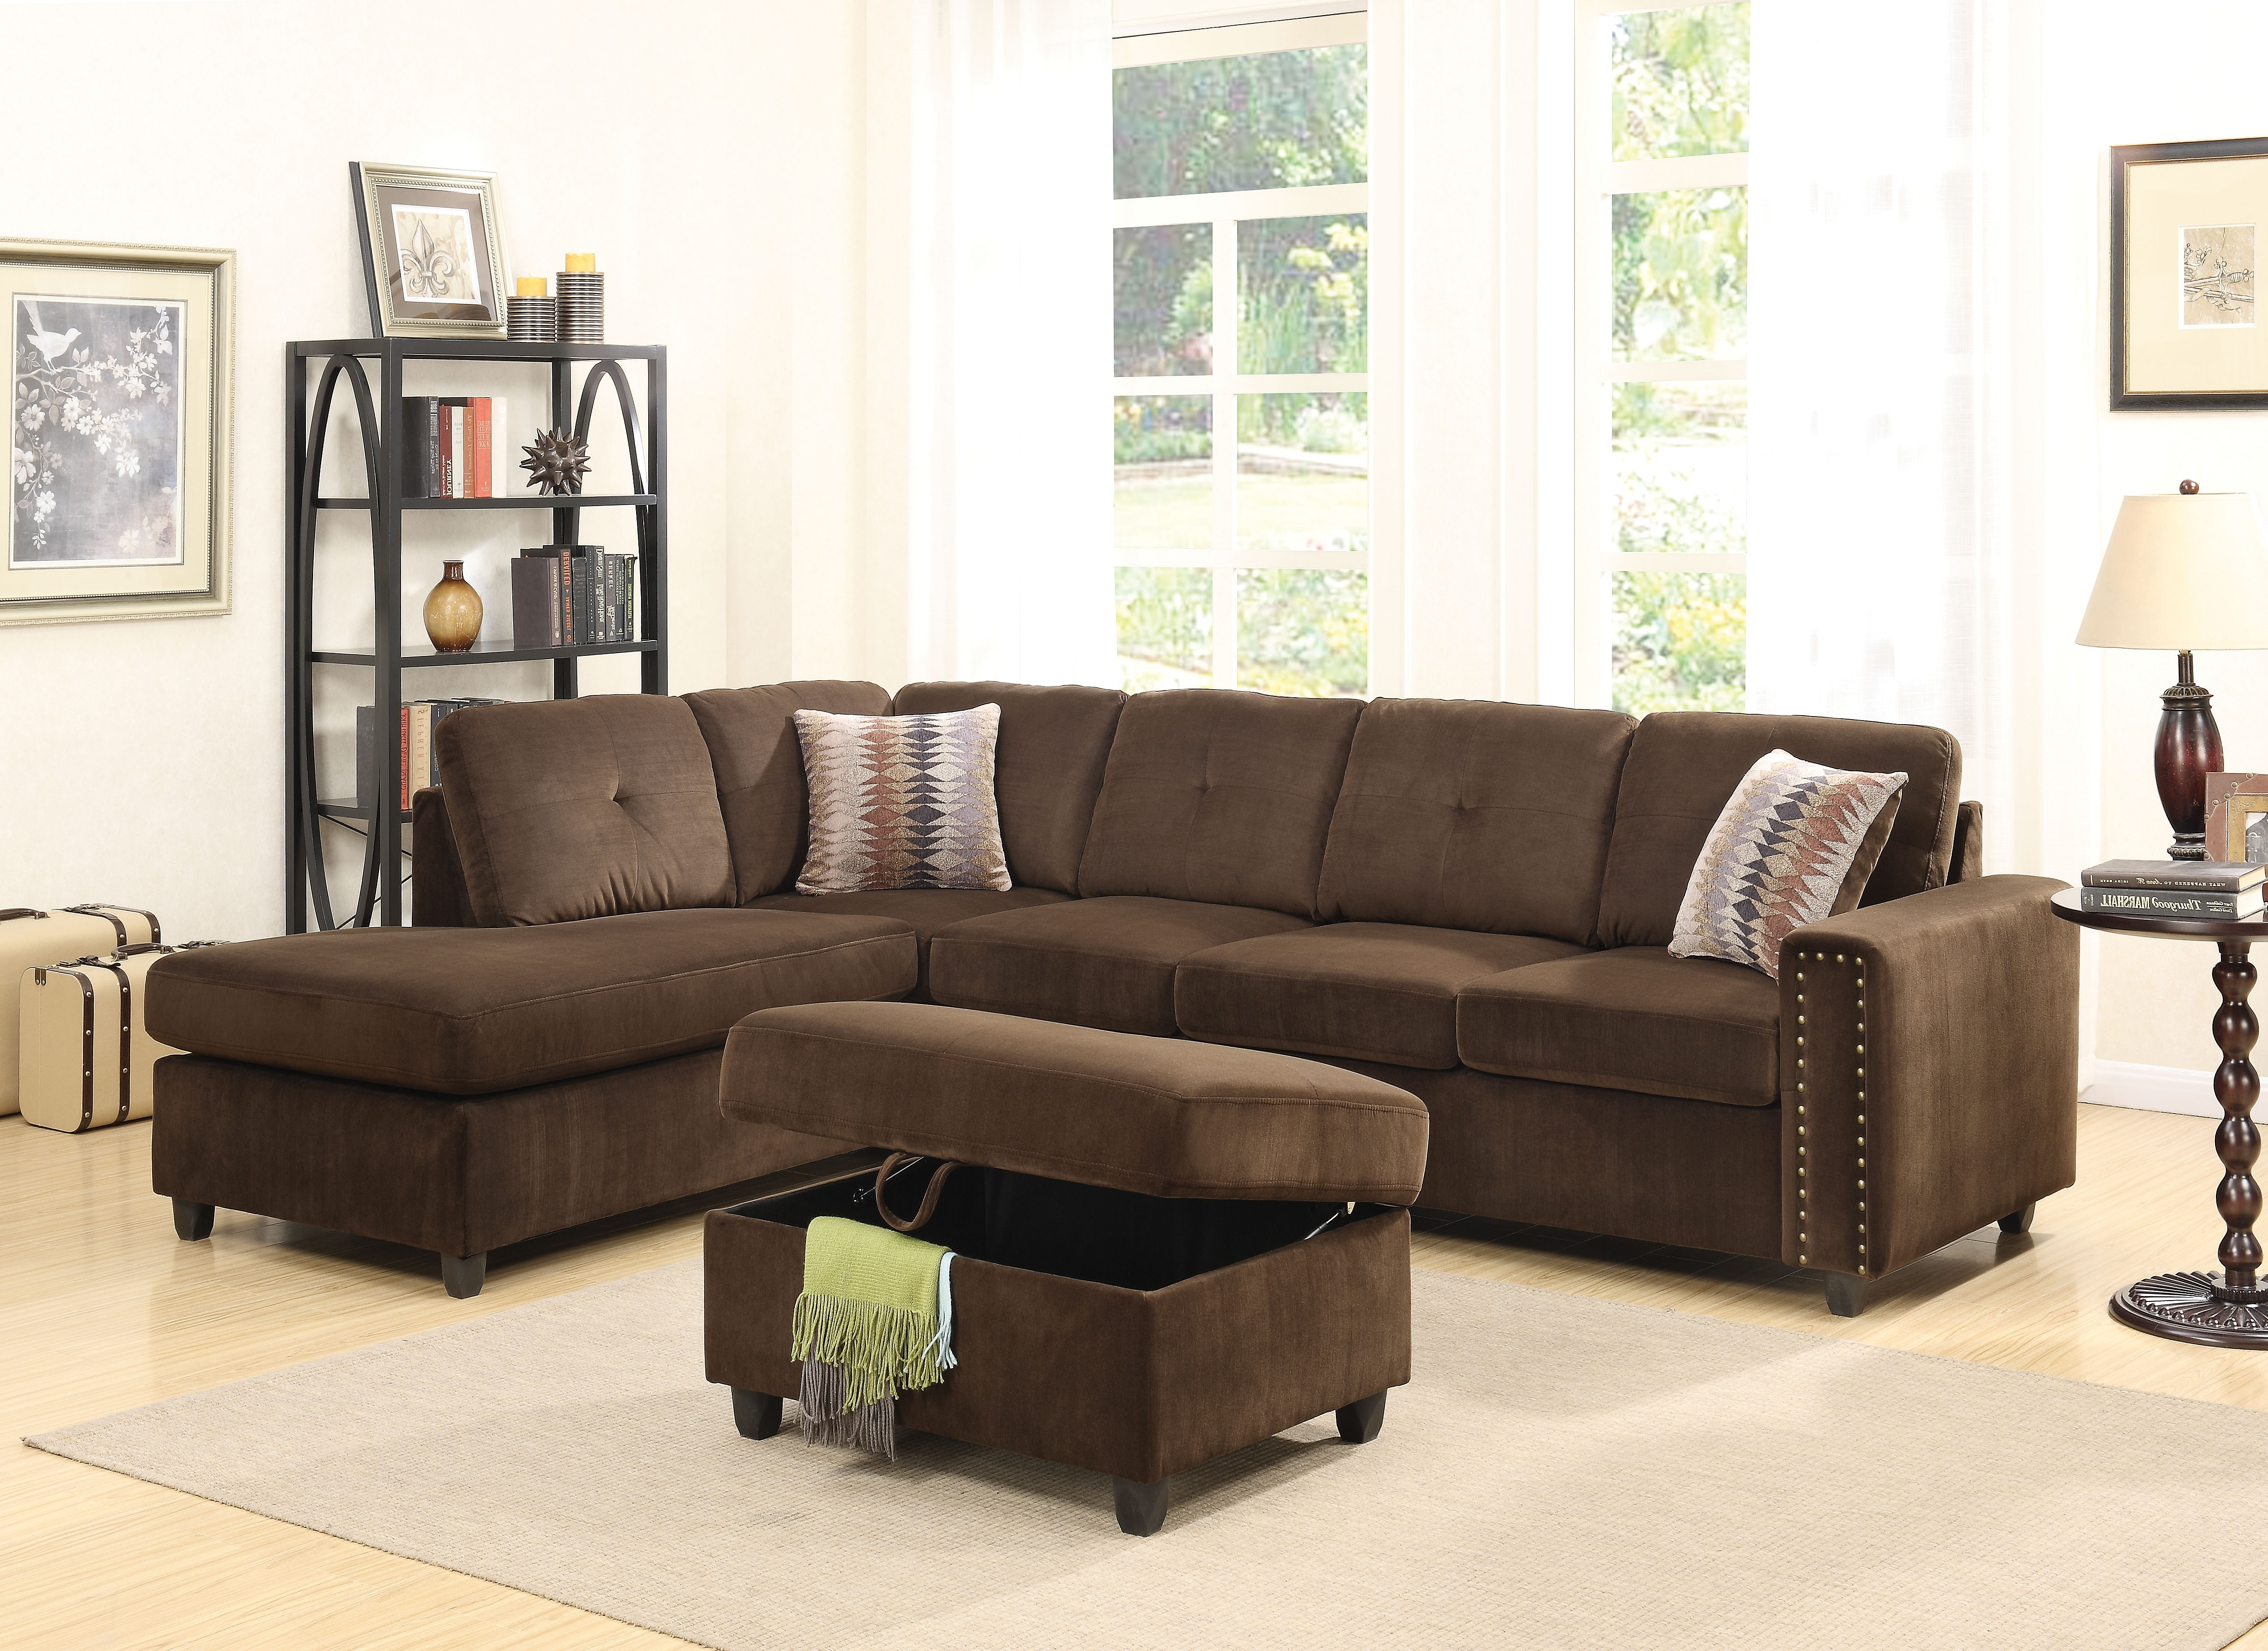 2018 Chocolate Sectional Sofas With Acme Belville Reversible Sectional Sofa With 2 Pillows, Chocolate (View 12 of 15)